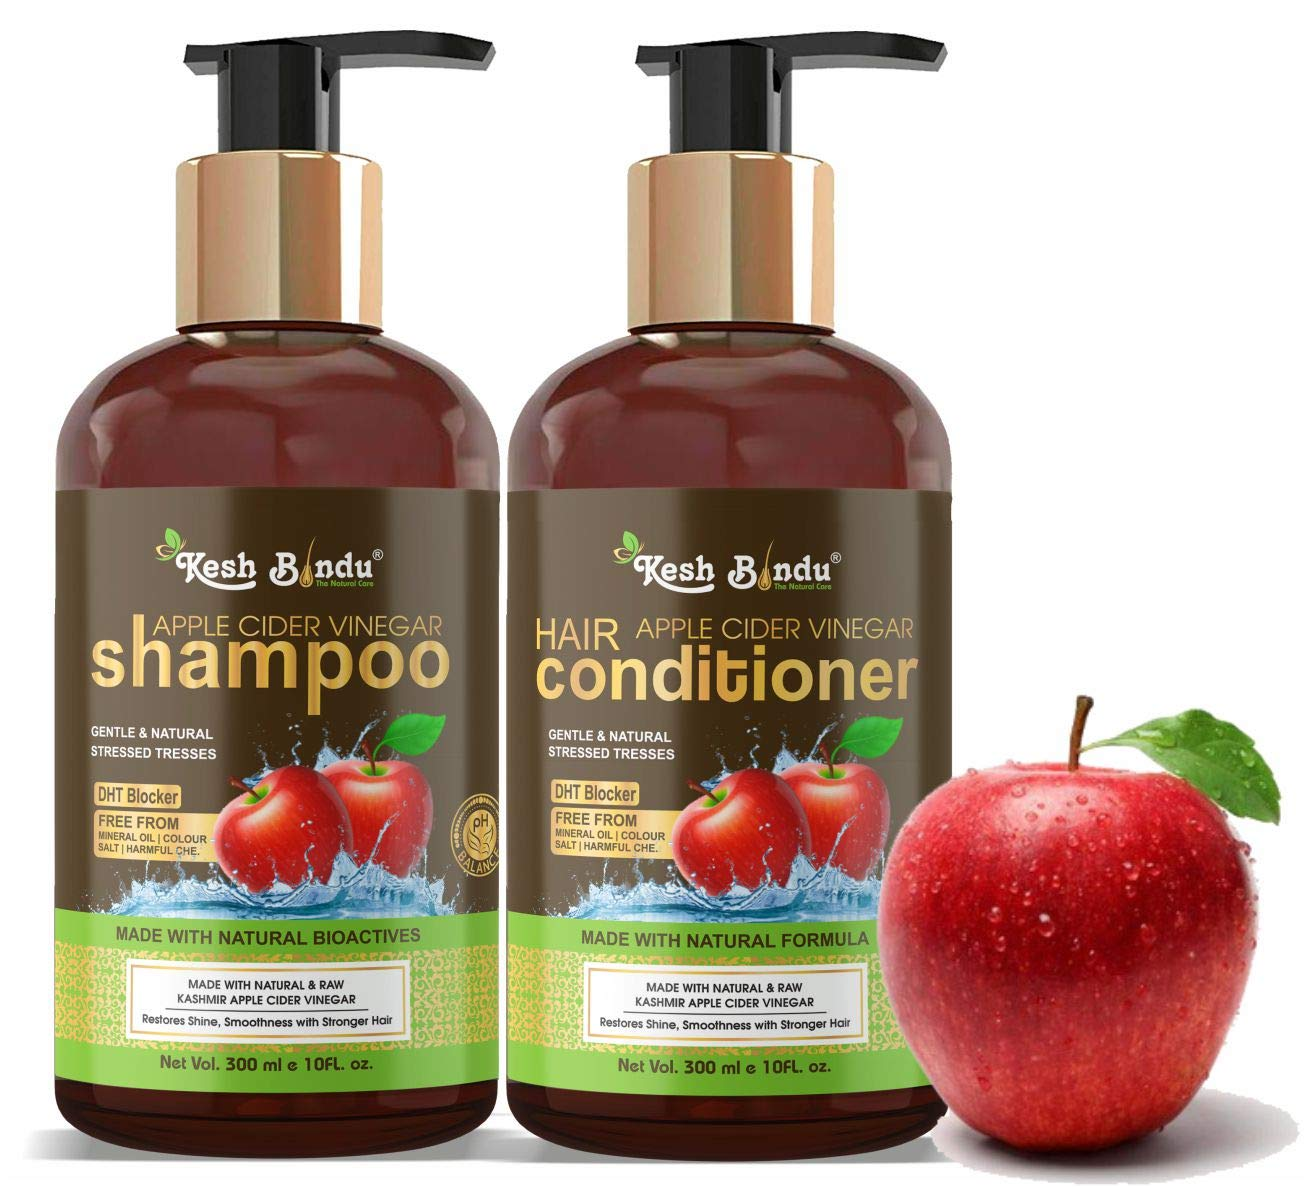 KESHBINDU Apple Cider Vinegar Shampoo and Hair Conditioner Set Increase Gloss, Hydration, Shine, Reduce Itchy Scalp, Dandruff & Frizz, No Parabens or Sulfates, All Hair Types 2 x 10 Fl Oz 300mL (Apple Cider Vinegar Shampoo+Conditioner, 10 Fl Oz 300mL)